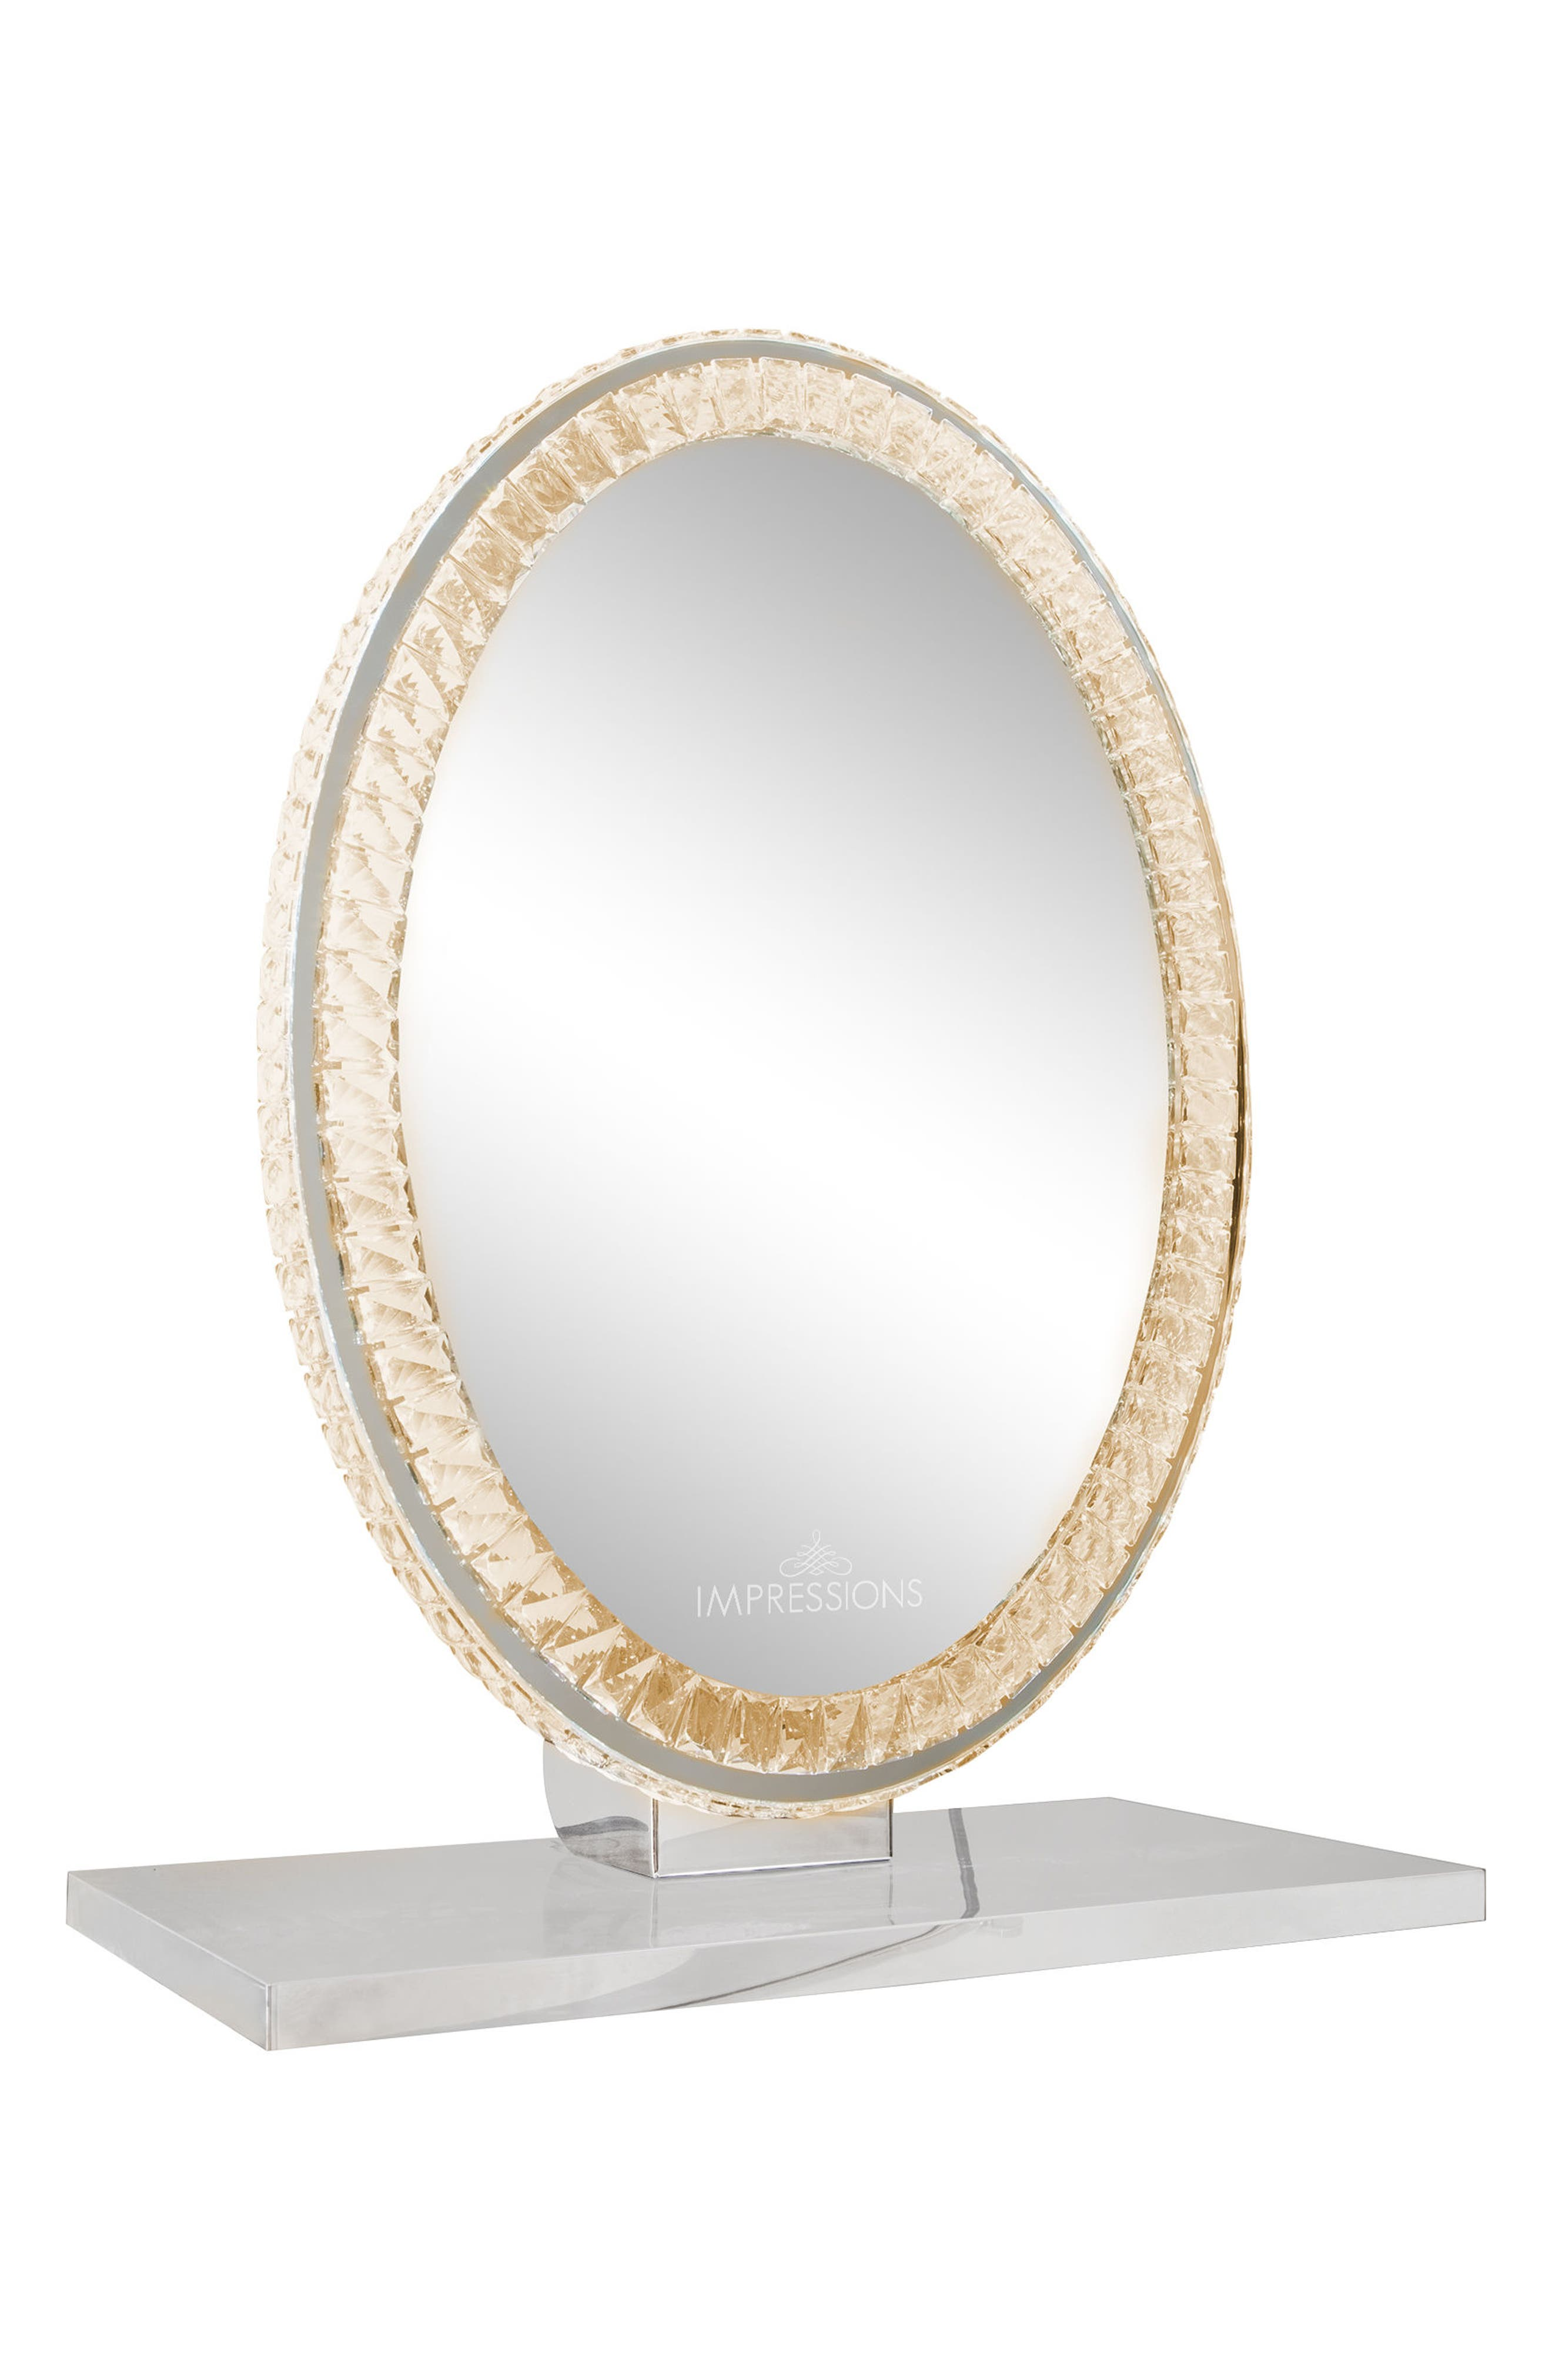 Diamond Collection Oval LED Vanity Mirror,                             Alternate thumbnail 2, color,                             100